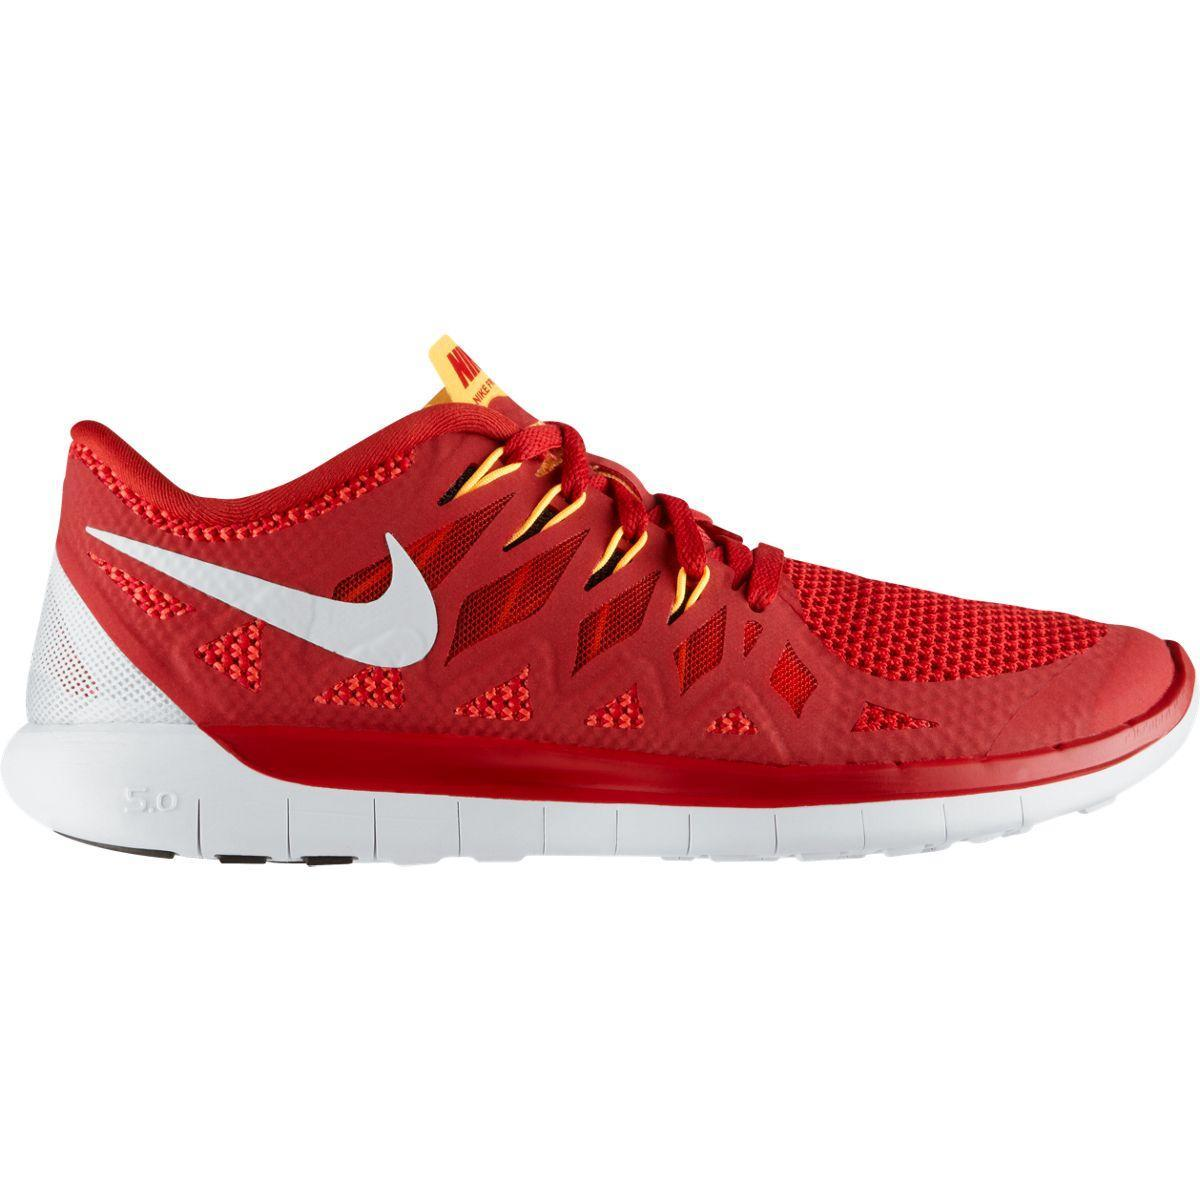 e98d37aec1 Nike Mens Free 5.0+ Running Shoes - Gym Red Light Crimson - Tennisnuts.com